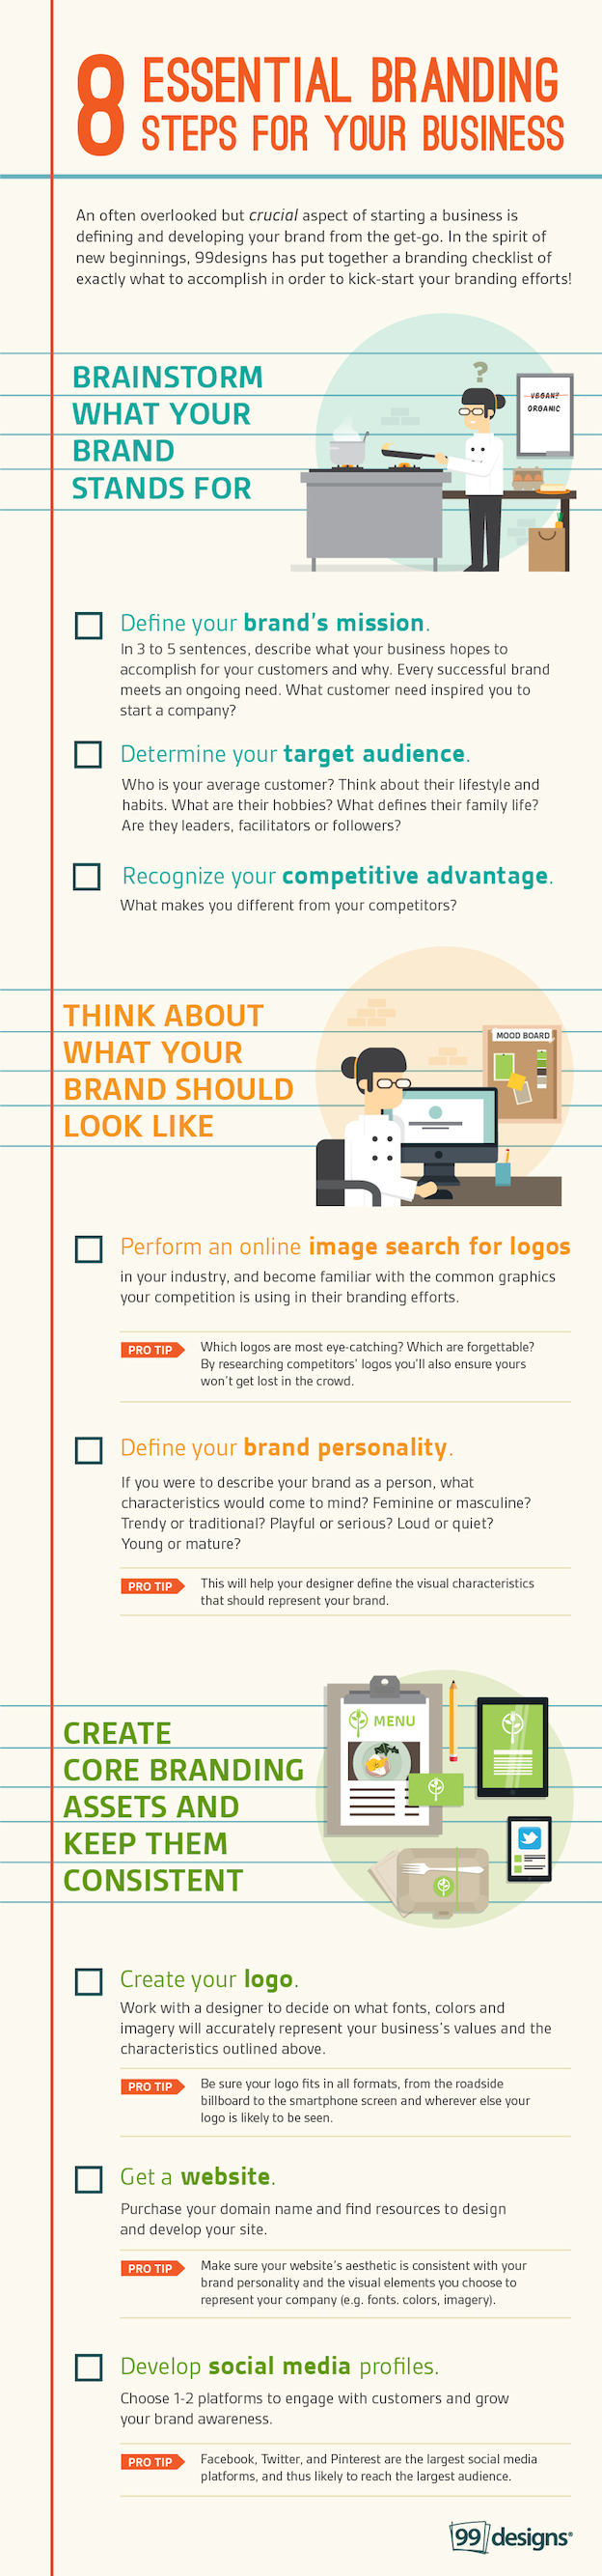 8-Essential-Branding-Steps-for-your-Business-infographic-plaza